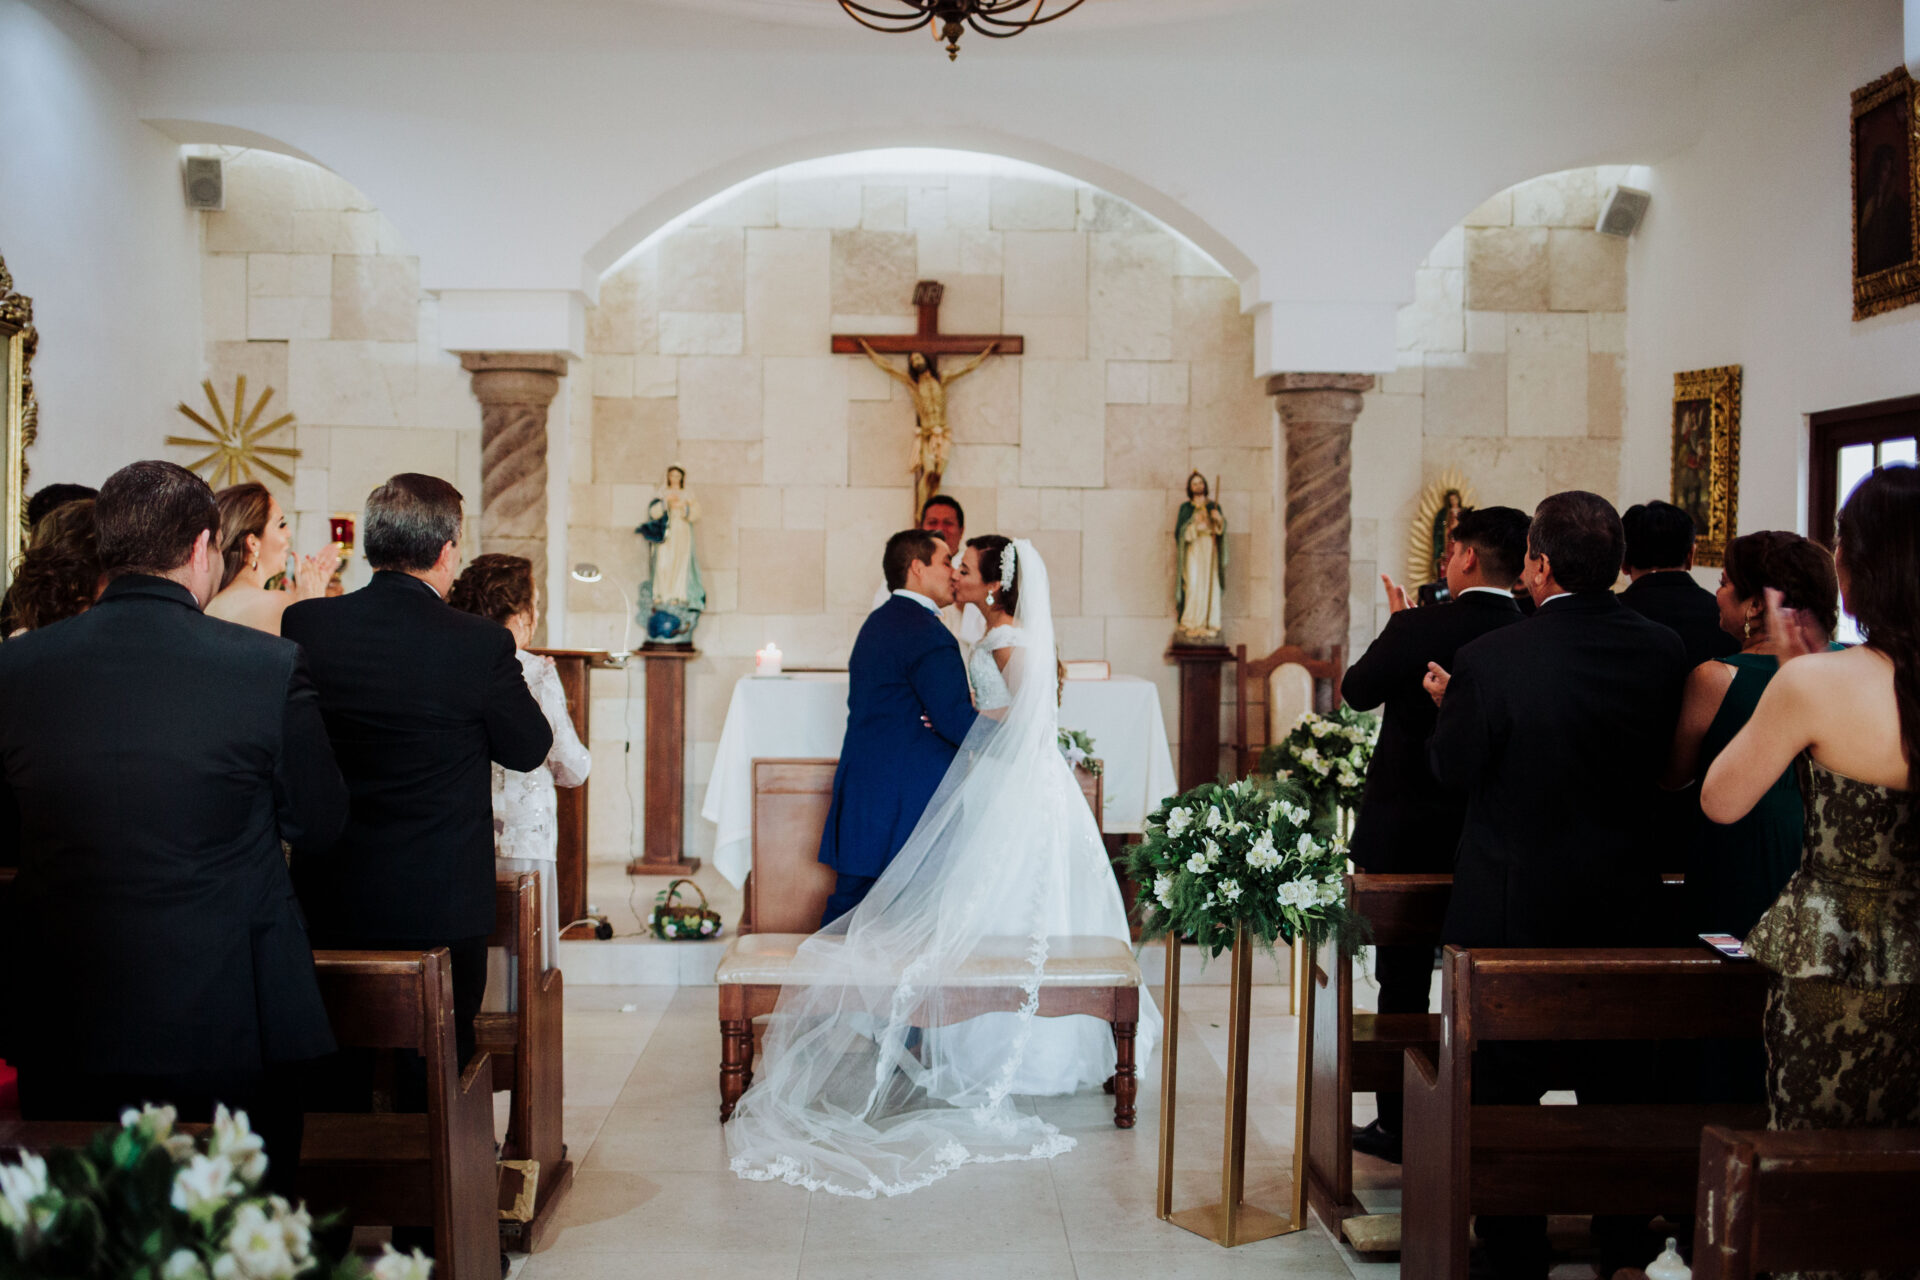 javier_noriega_fotografo_bodas_torreon_coahuila_zacatecas_wedding_photographer33a